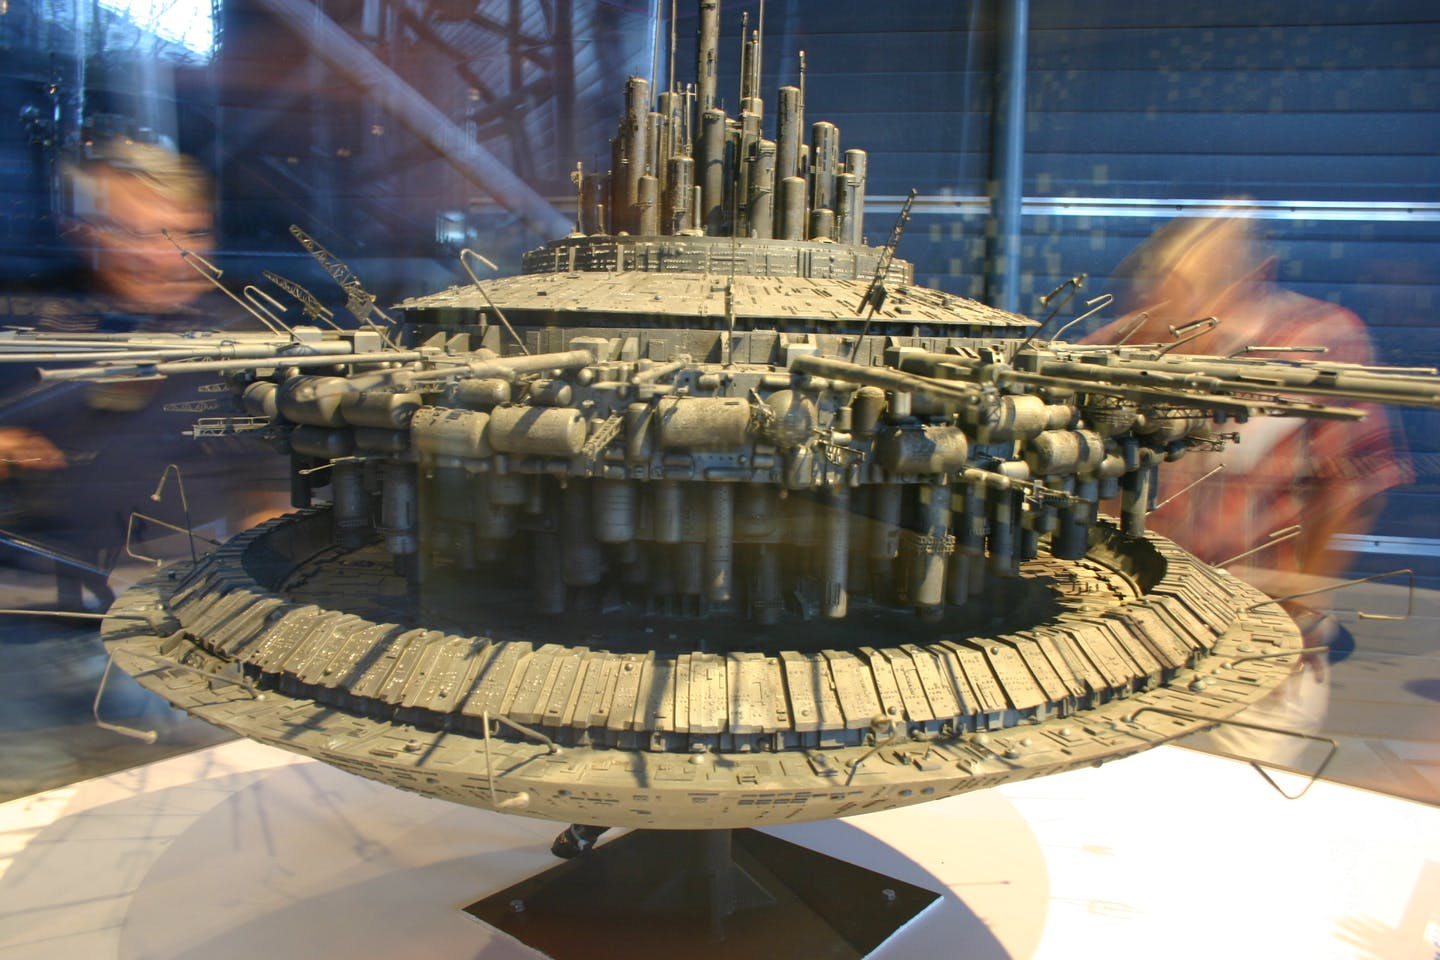 Model of the alien mothership from Close Encounters of the Third Kind